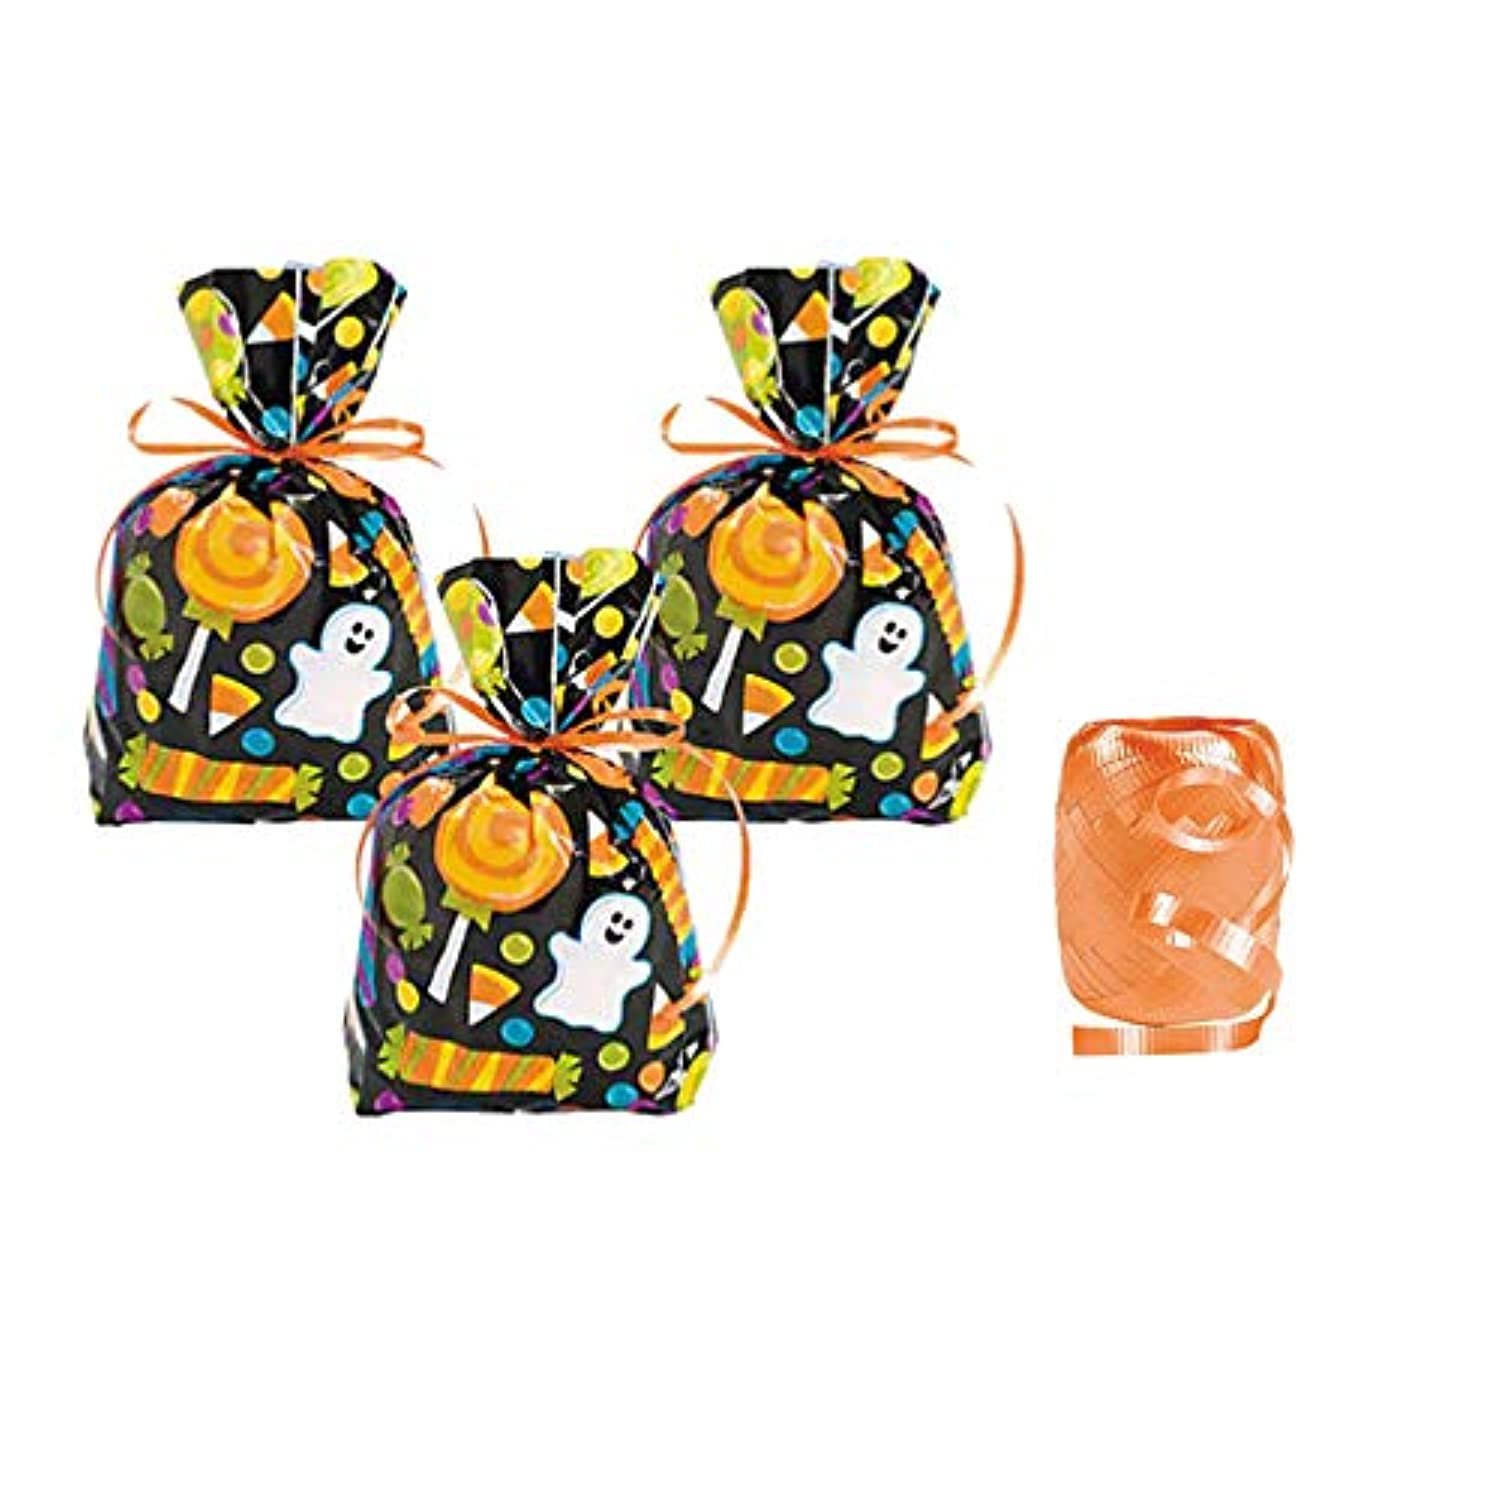 Halloween Goodie Bags - 24 Treat Bags with Ribbon Ties khh922252